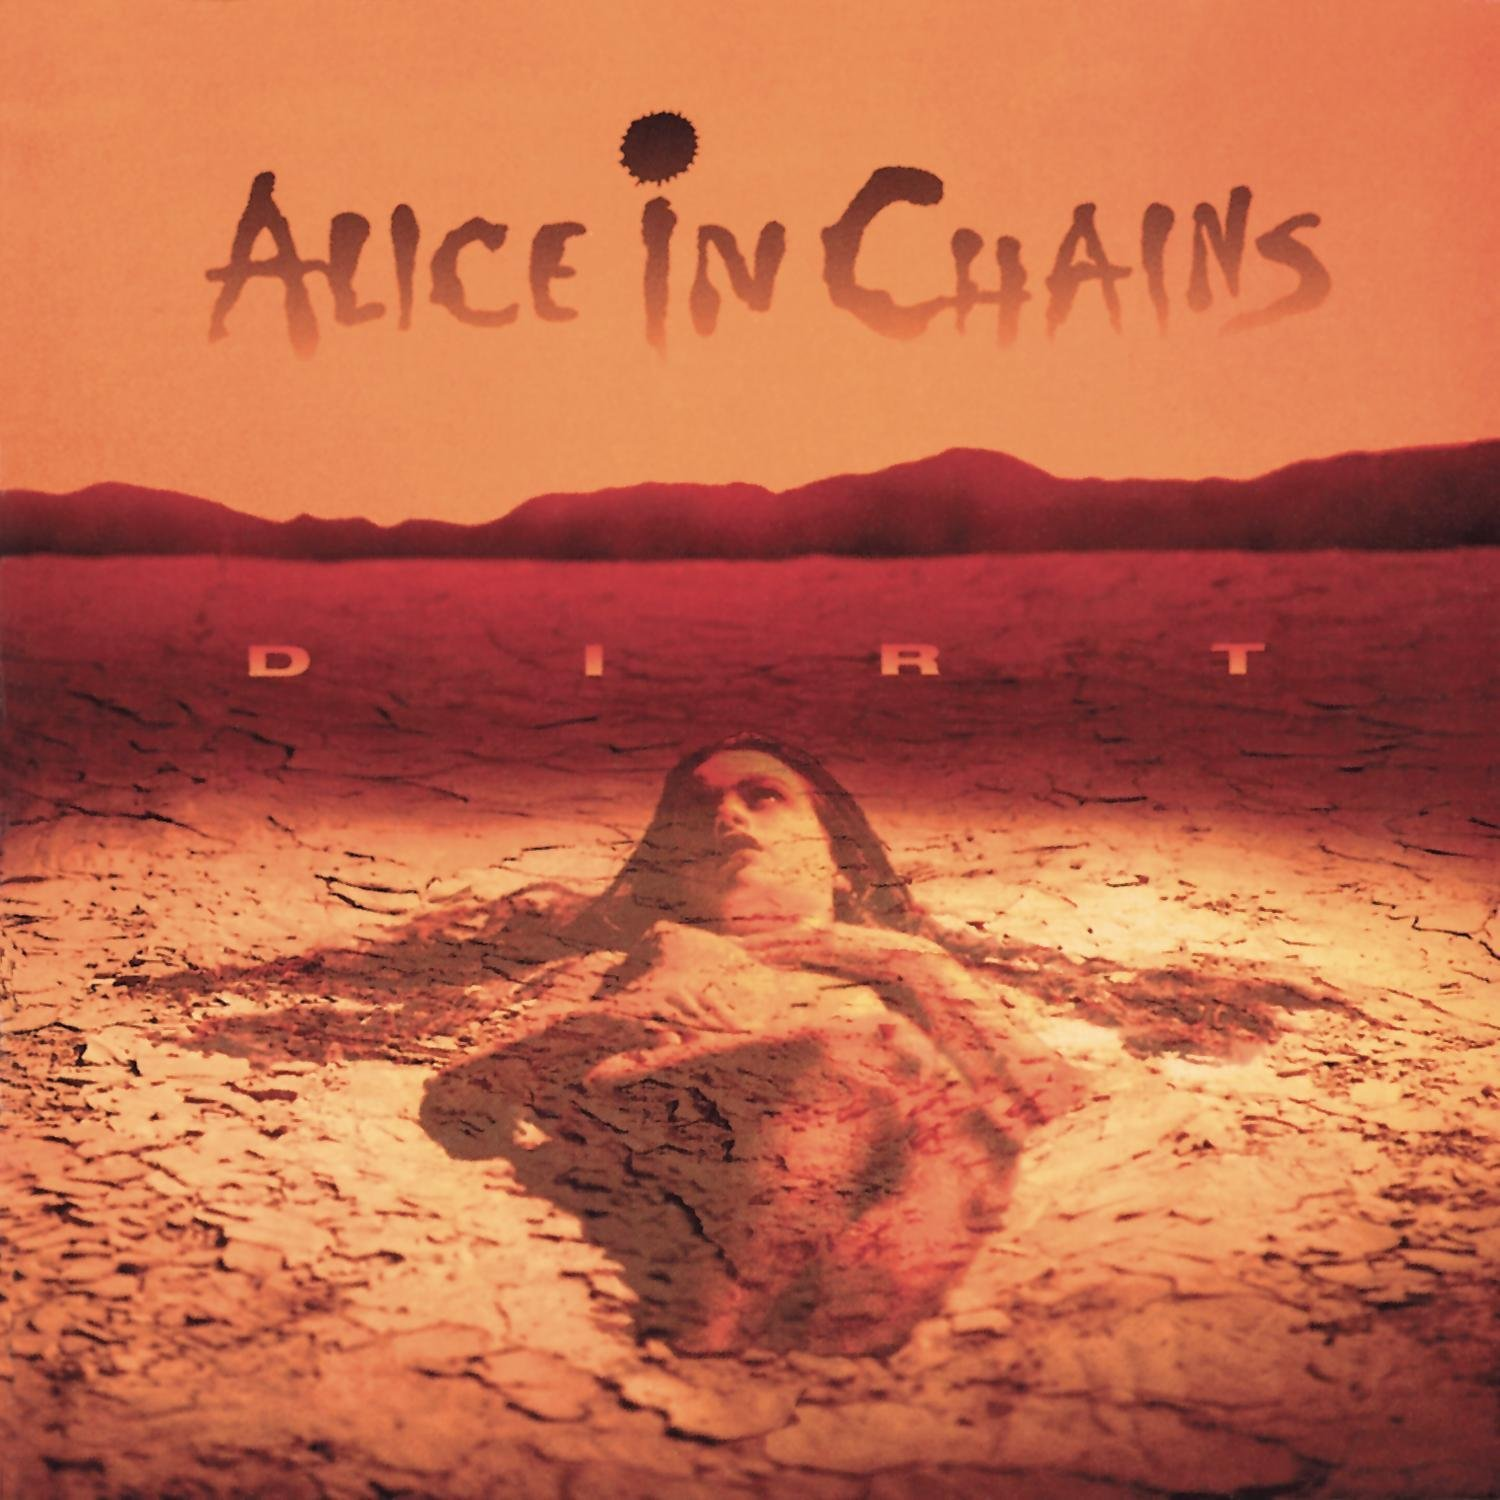 alice in chains The Top 10 Grunge Albums of All Time